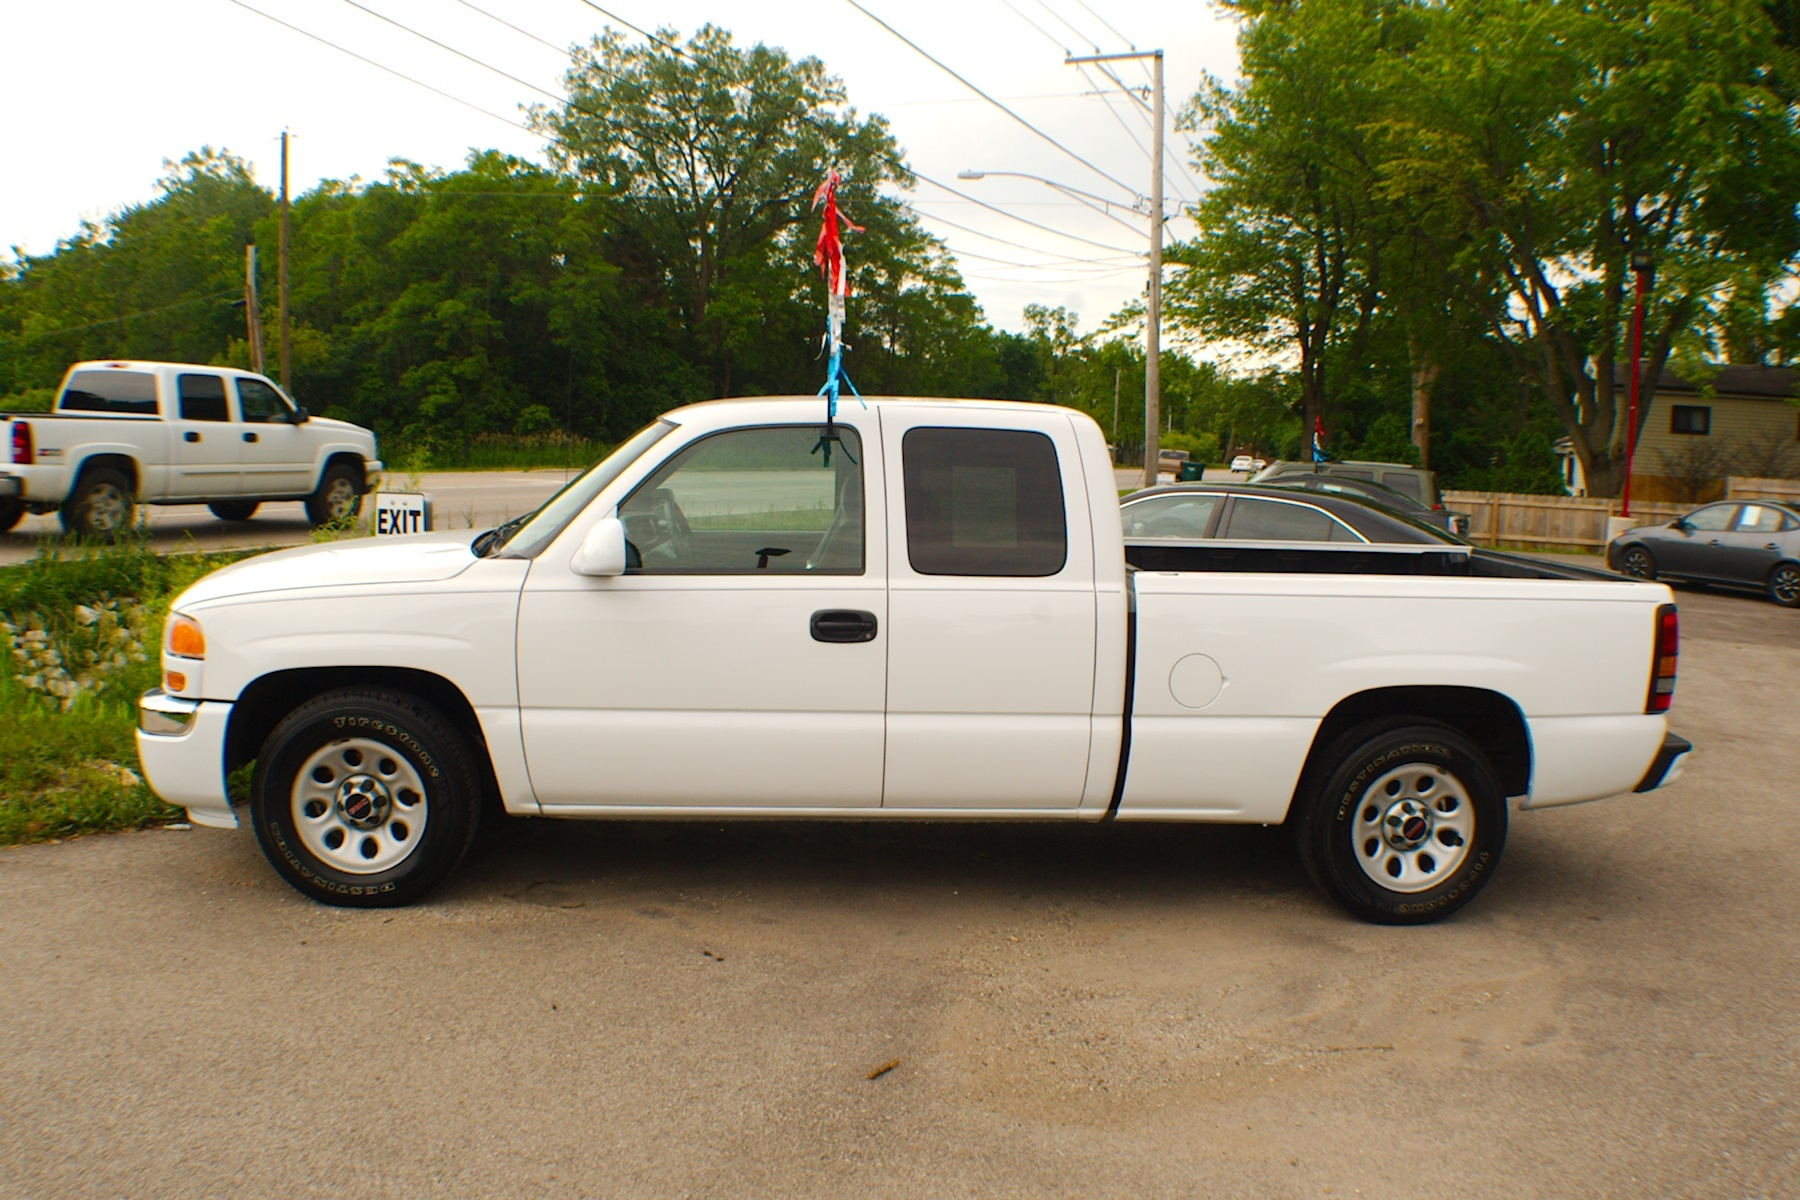 2007 GMC Sierra White Used 4x2 Ext Cab Used Truck Sale Antioch Zion Waukegan Lake County Illinois